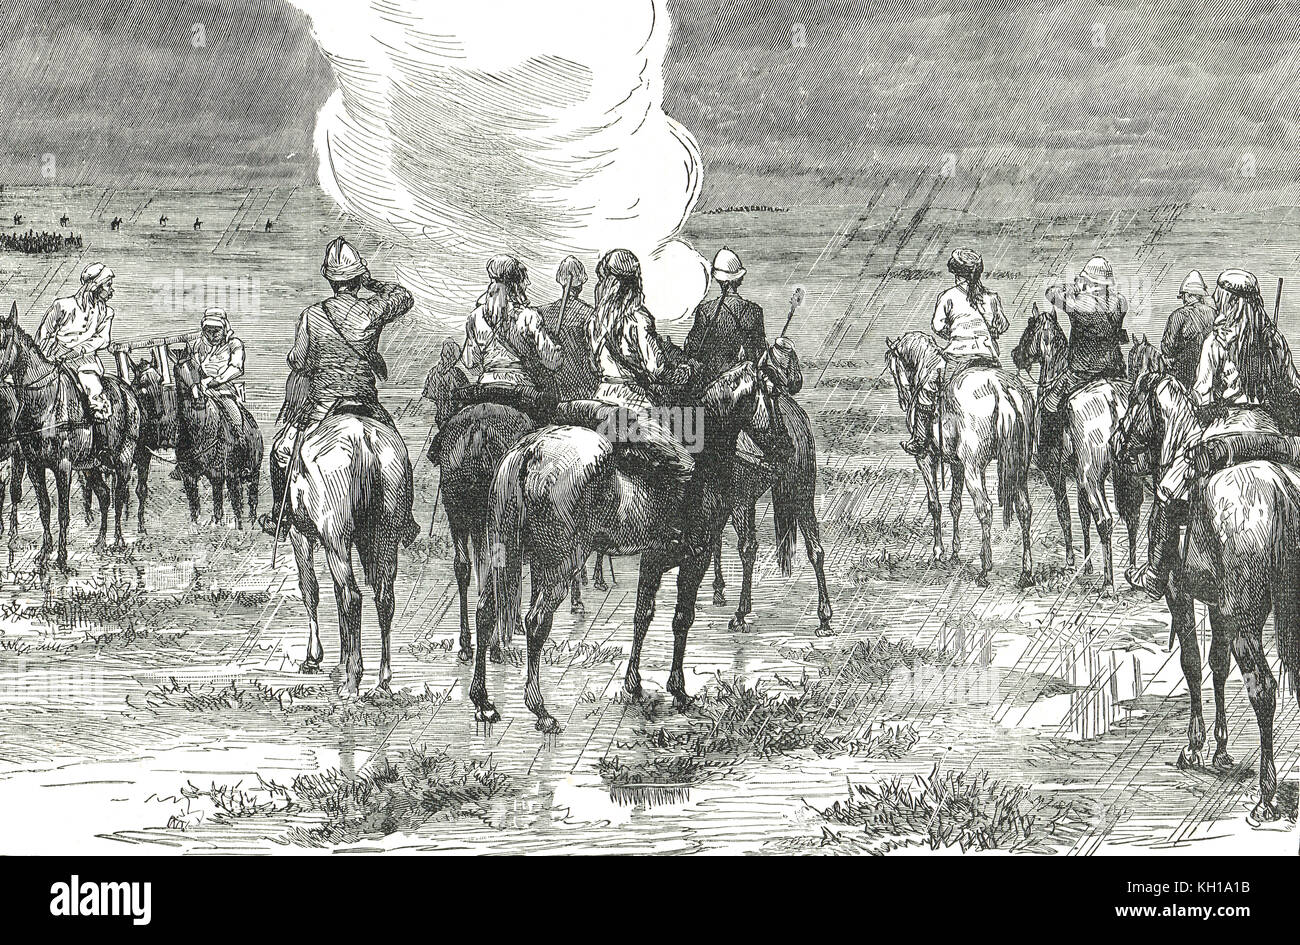 Egyptian Army attempt to relieve Tokar, 4 February 1884, Sudan war - Stock Image